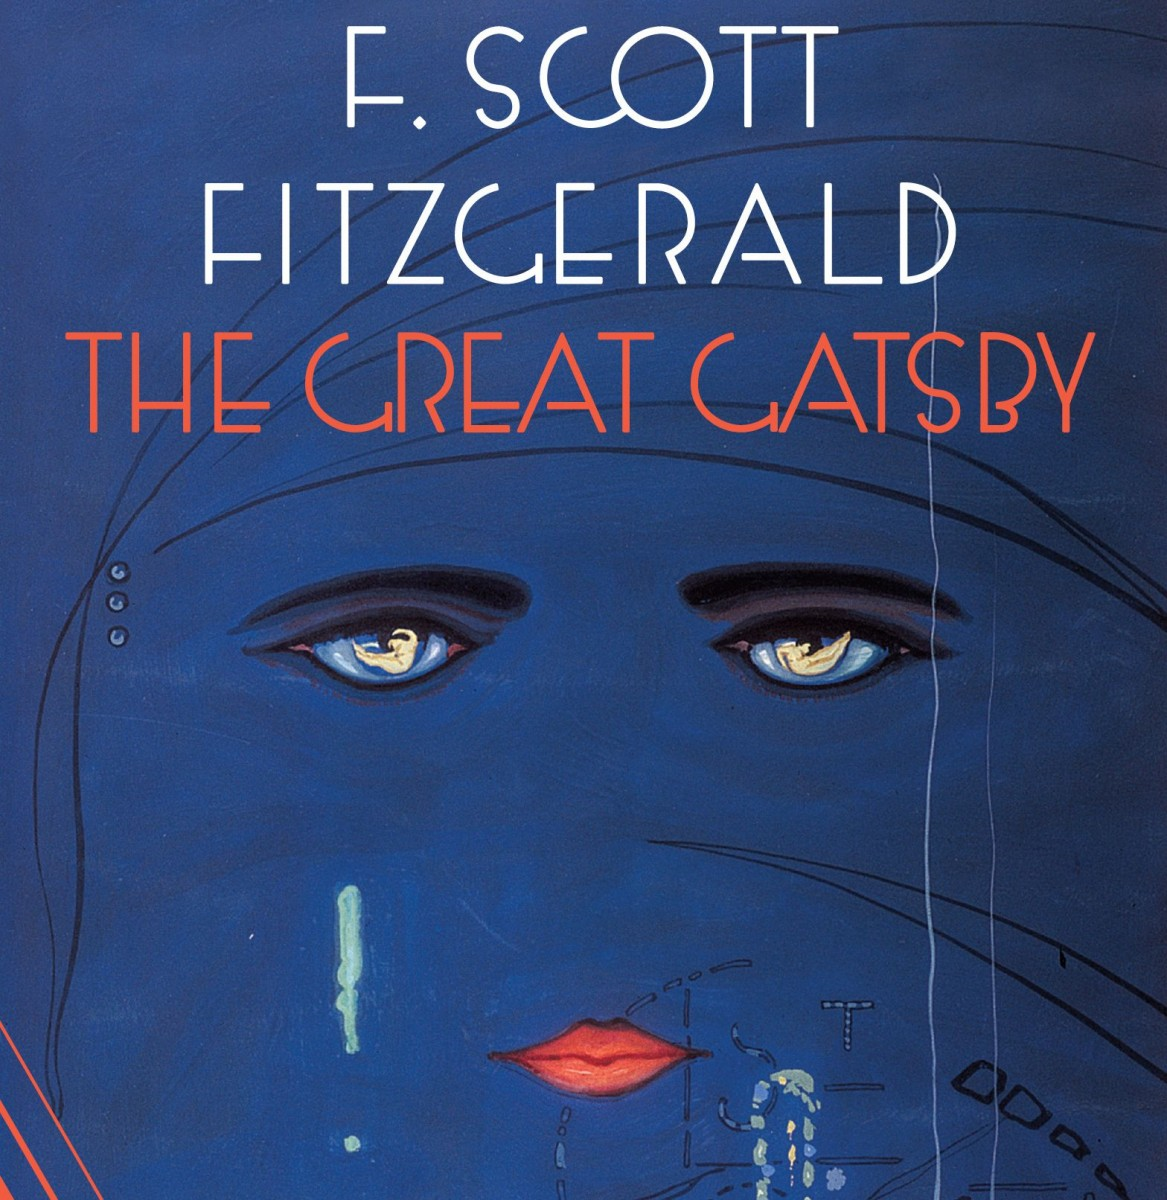 the great gatsby is a story Quick answer jay gatsby, the character from f scott fitzgerald's novel the great gatsby, was a fictional person fitzgerald once confessed to a friend that there was a bit of himself in gatsby.